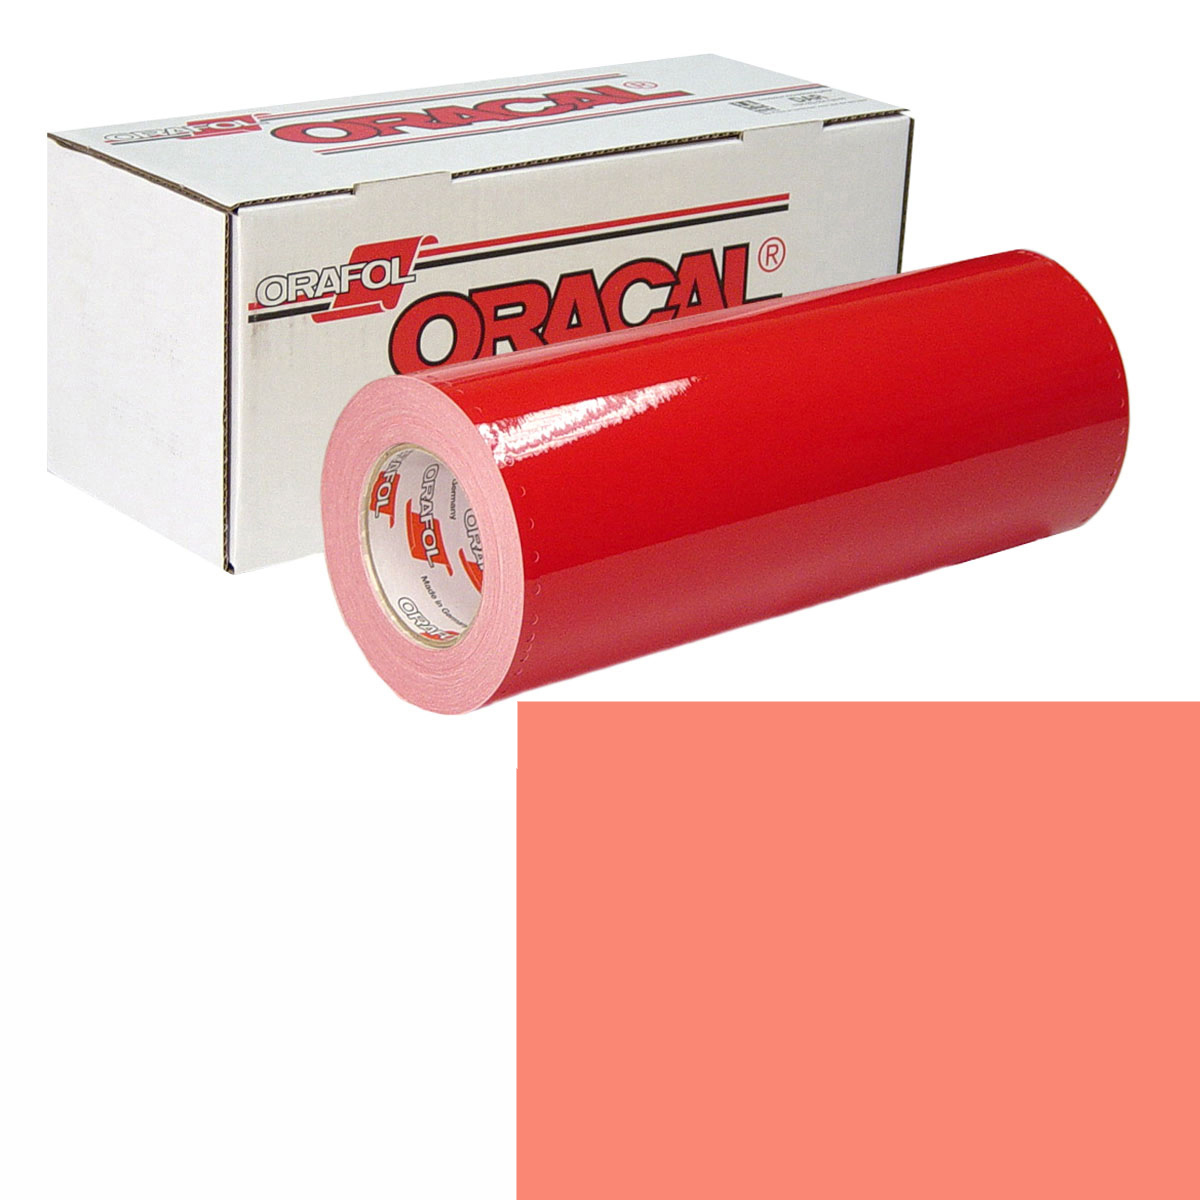 ORACAL 951 15in X 50yd 341 Coral